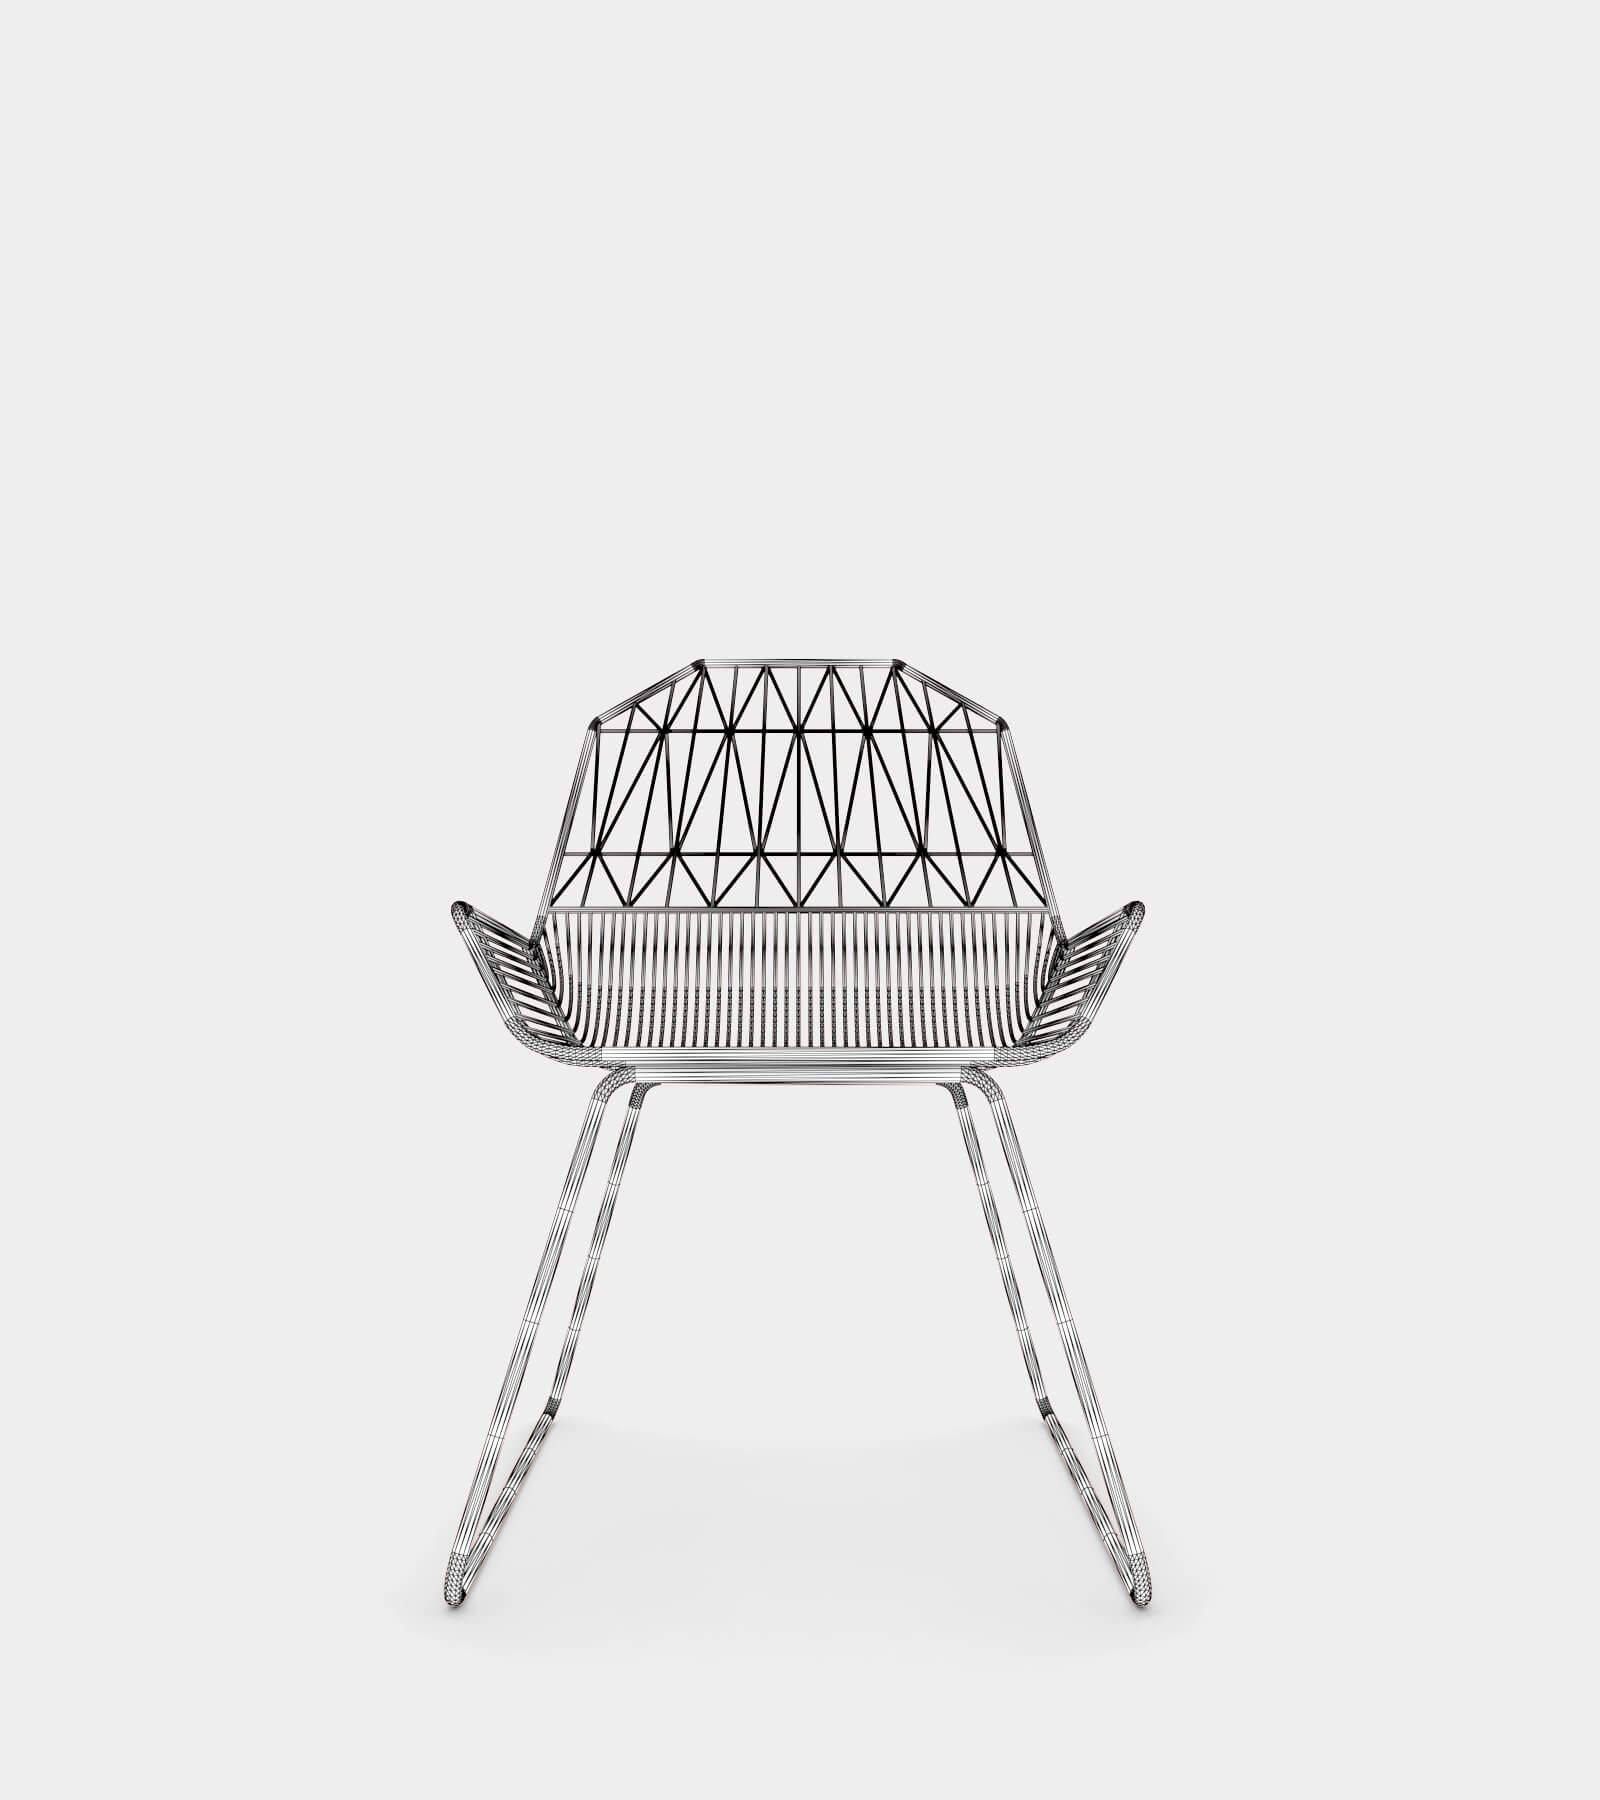 Modern outdoor & indoor lounge chair-wire-2 3D Model